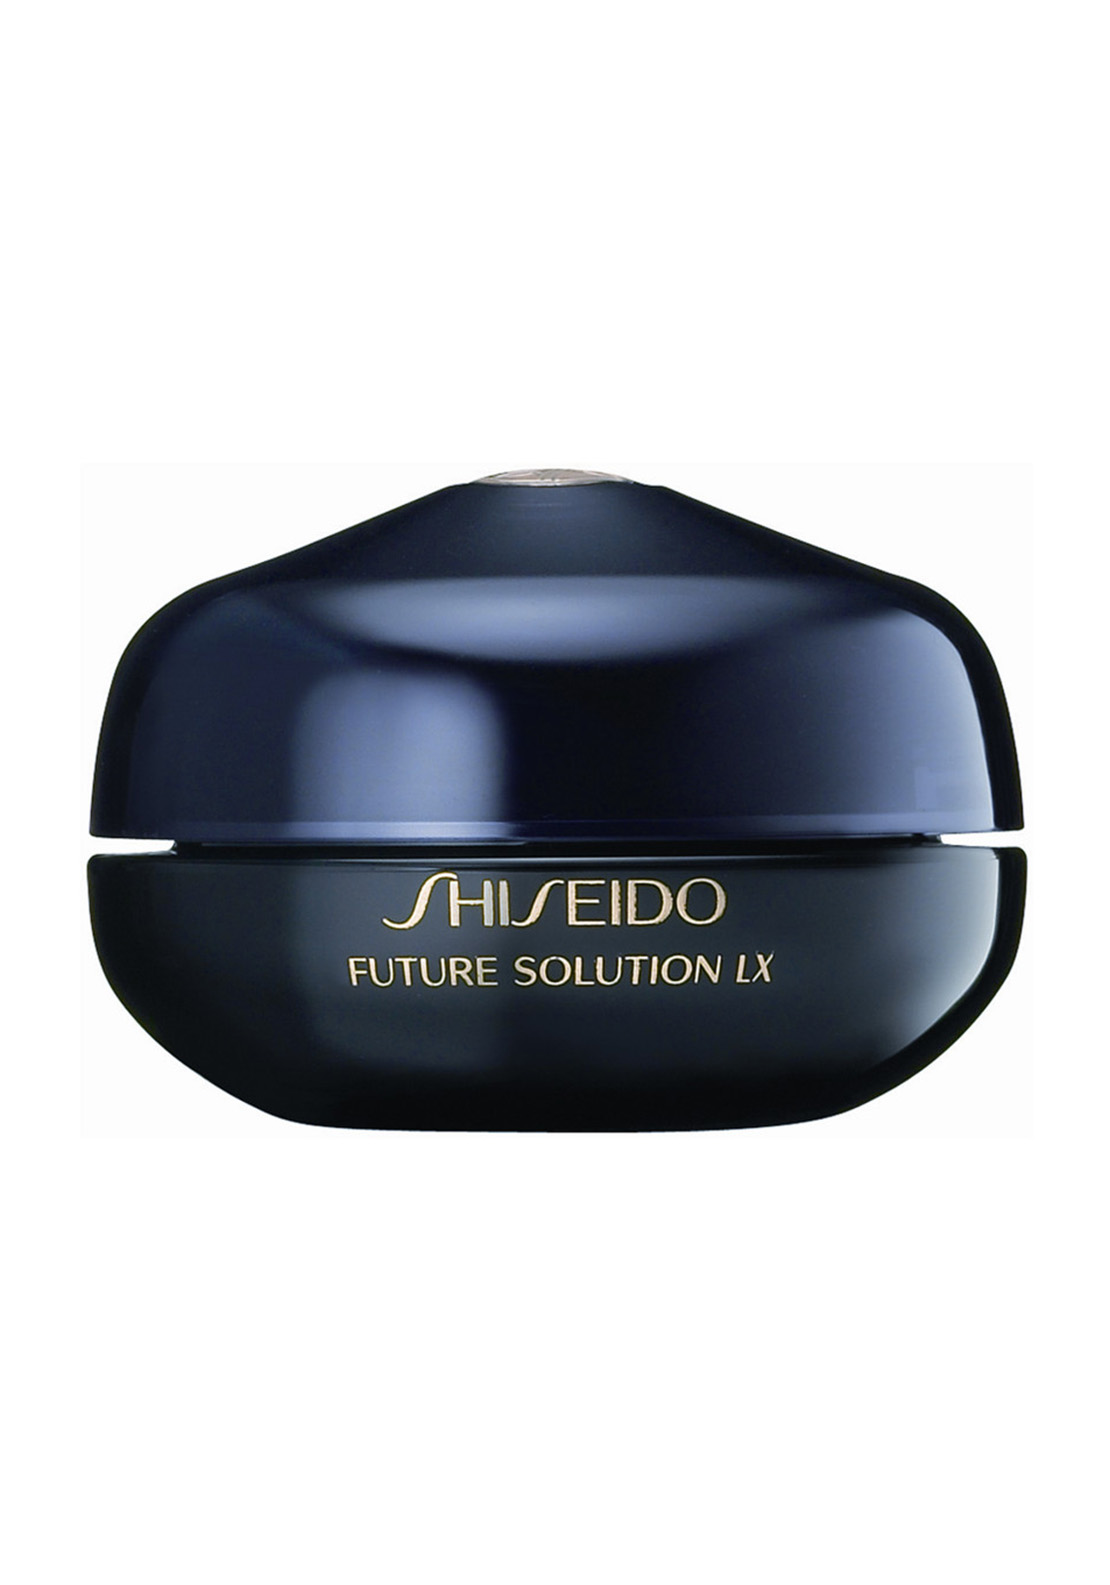 Shiseido Future Solutions LX Eye and Lip Contour Regenerating Cream (15ml)